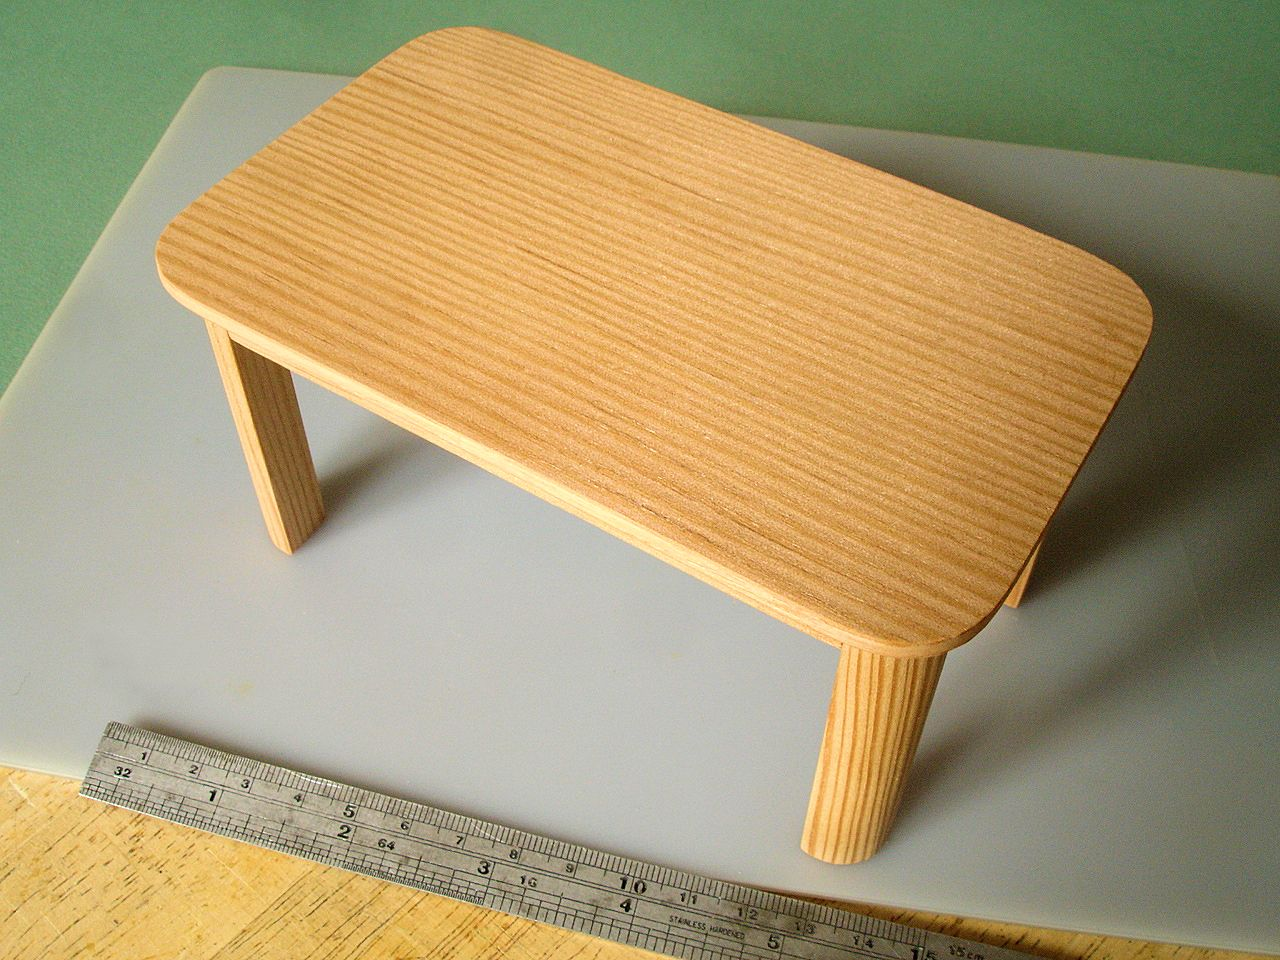 David Neat, 1:10 scale model of Douglas fir (Oregon pine) table, designed by Sue Skeen for The New Craftsmen